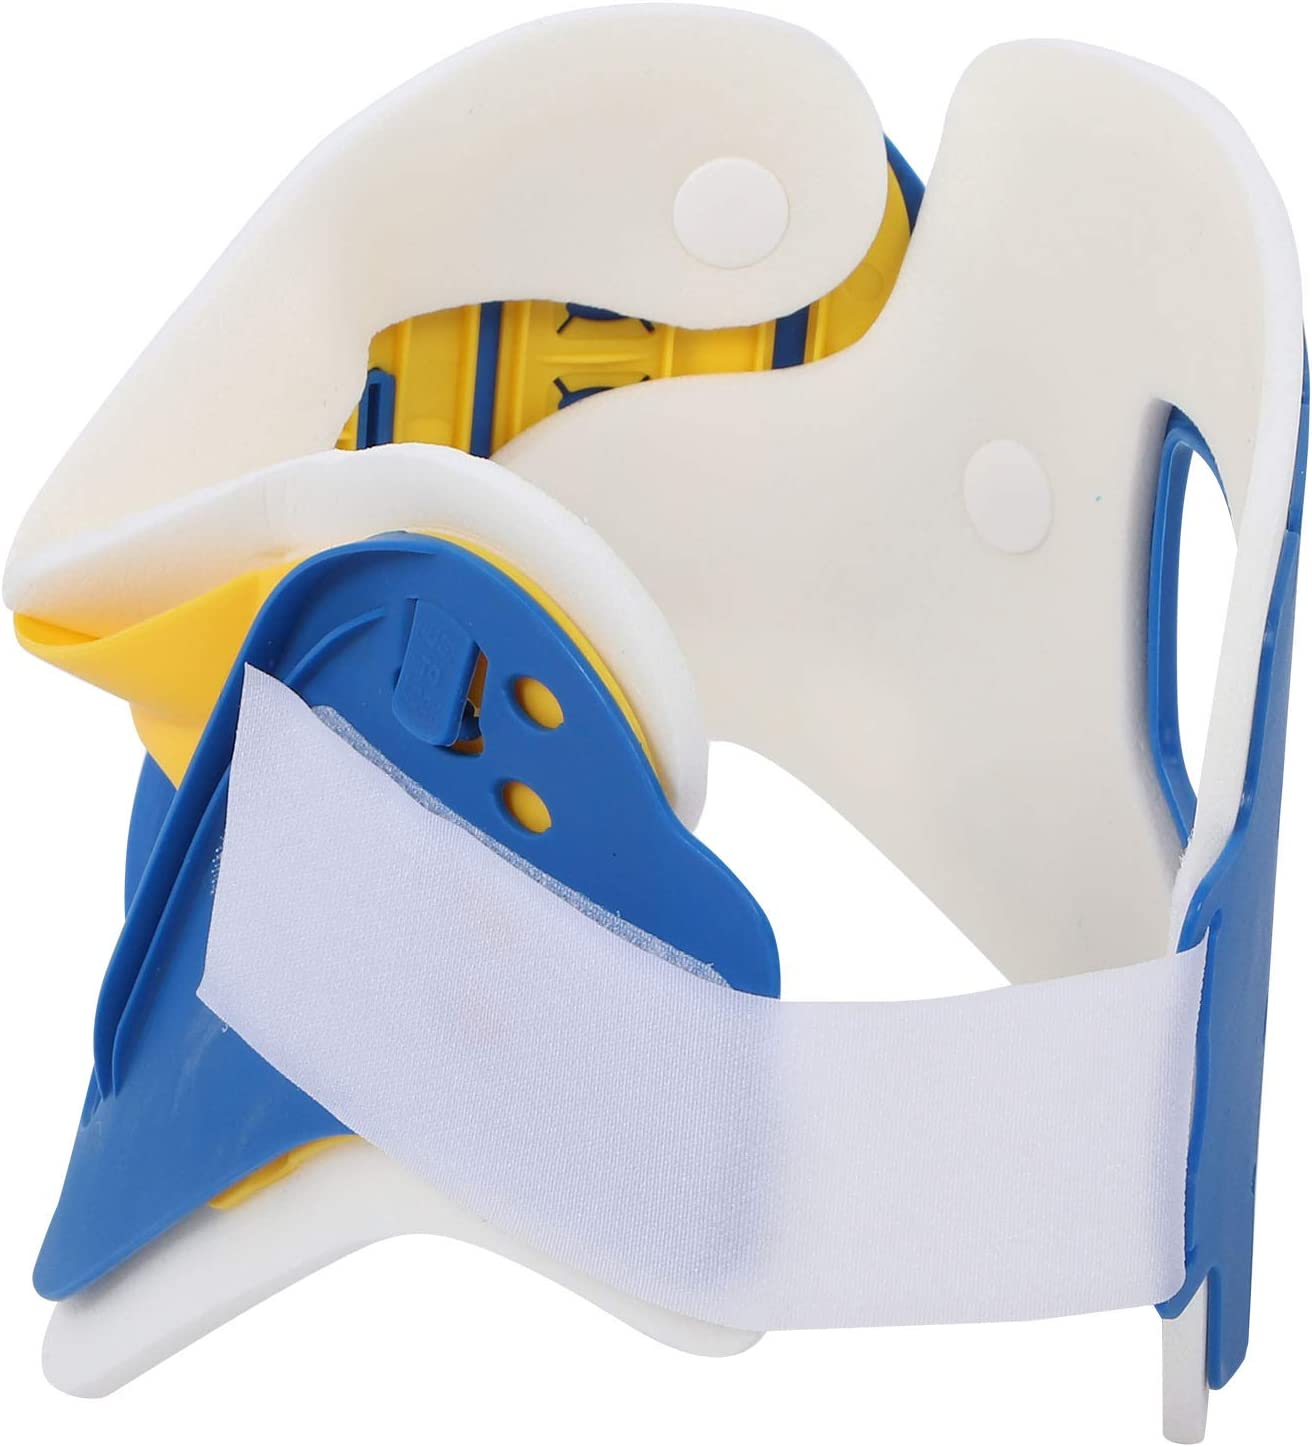 SALUTUYA Topics on TV Soft High Save money Reliability Stable Cervical Collar and Safety